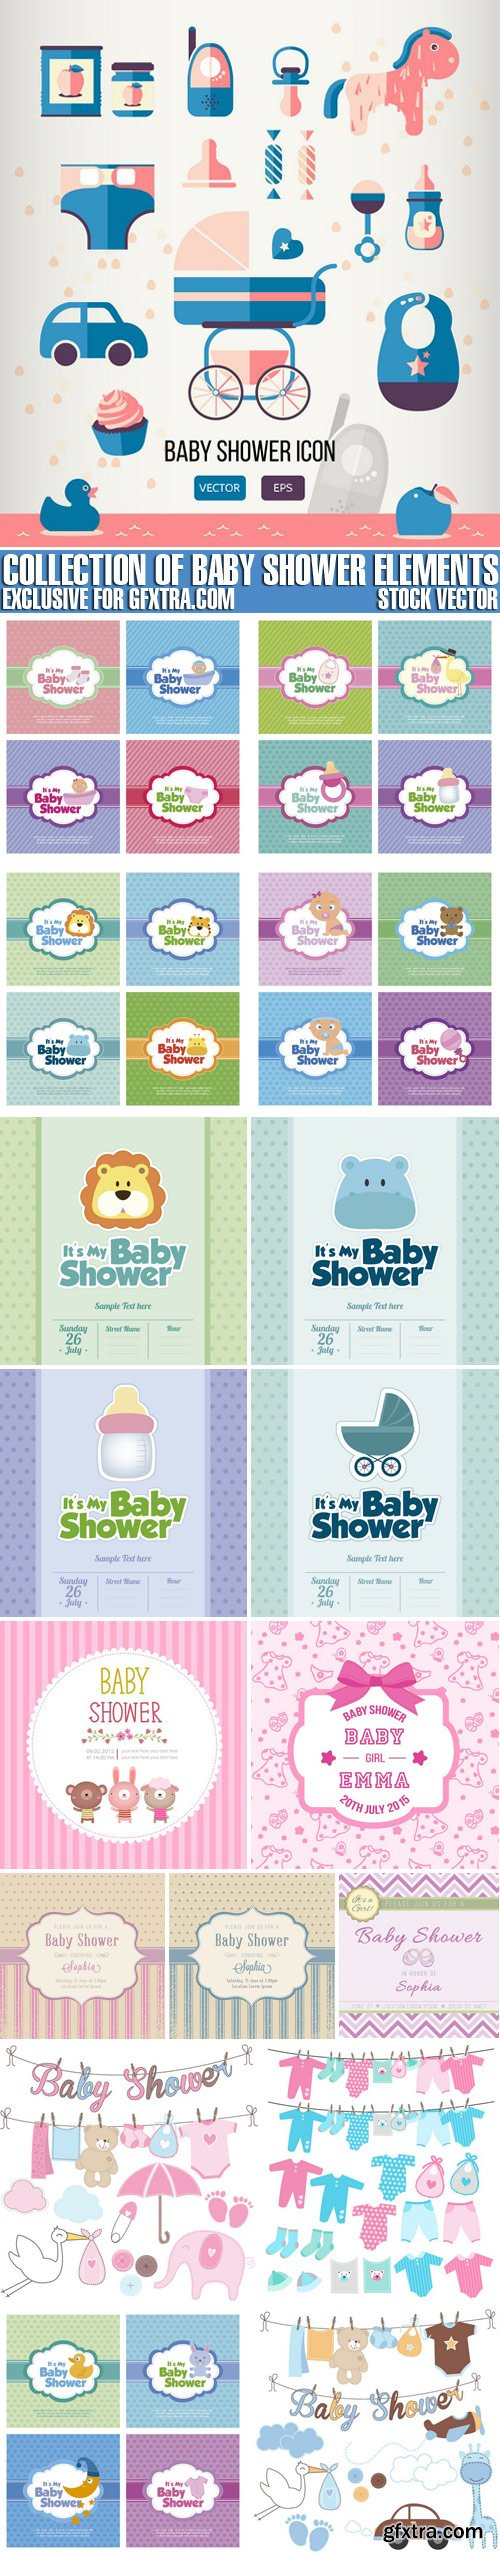 Stock Vectors - Collection Of Baby Shower Elements